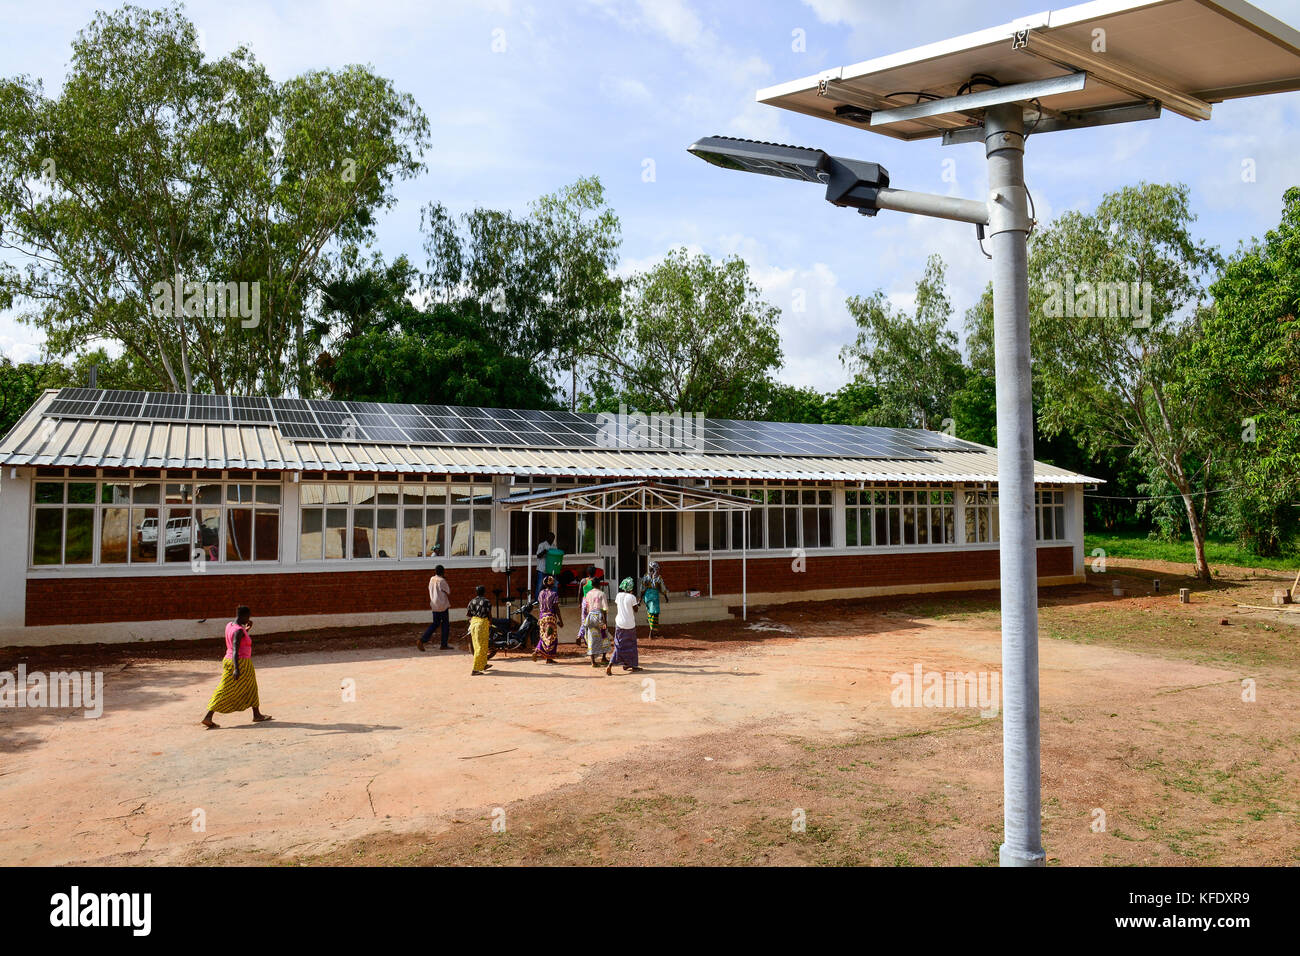 BURKINA FASO, Bobo Dioulasso, agricultural institute CAP-M, office with PV panels - Stock Image